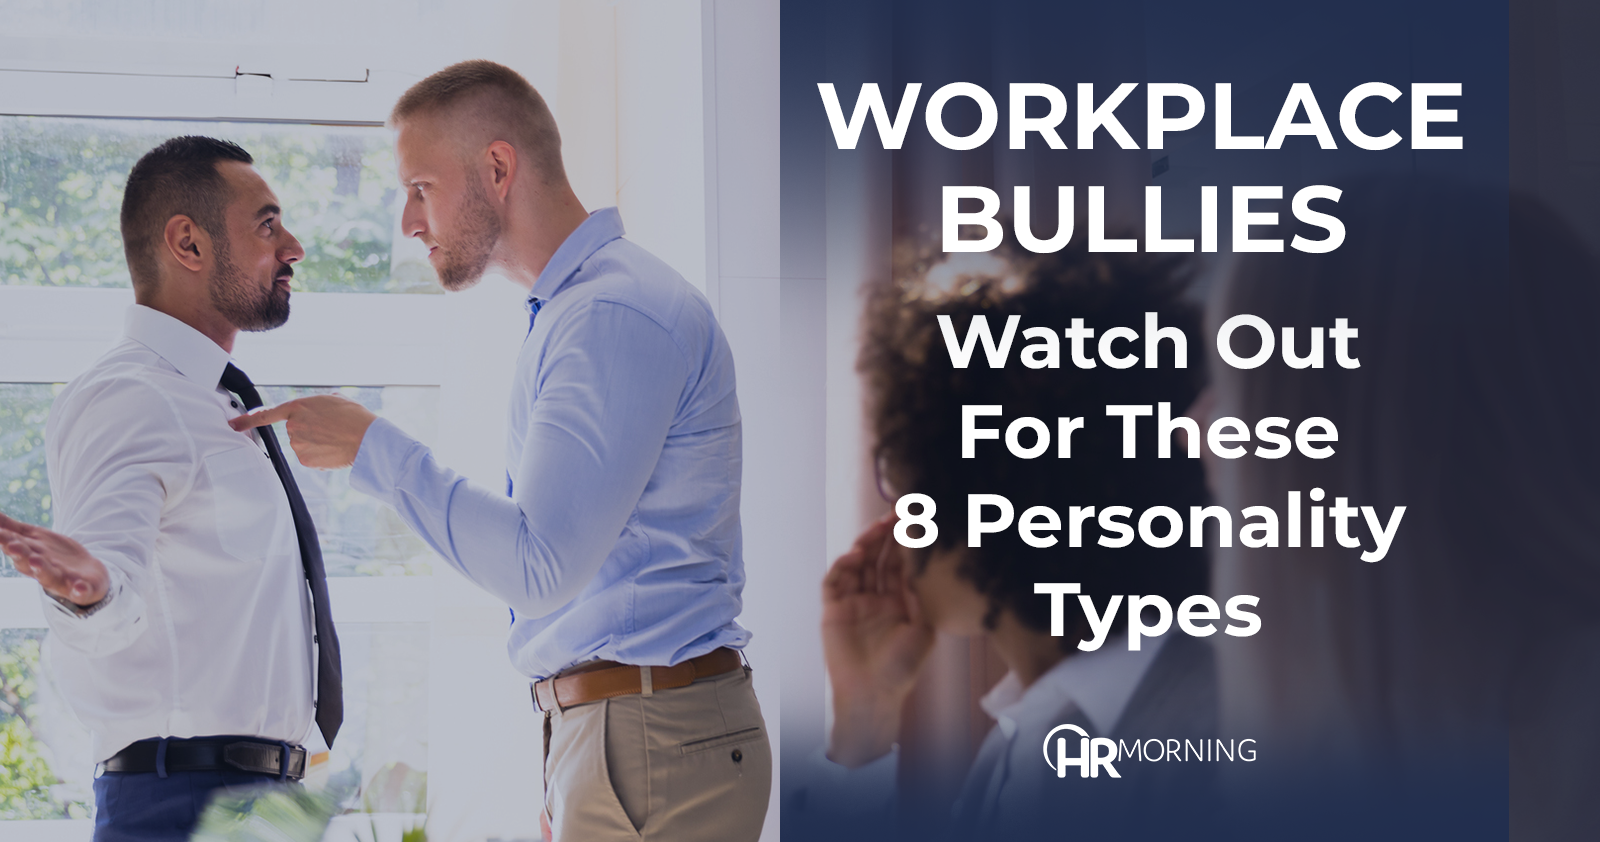 Watch out for these 8 workplace bully personality types | HR Morning